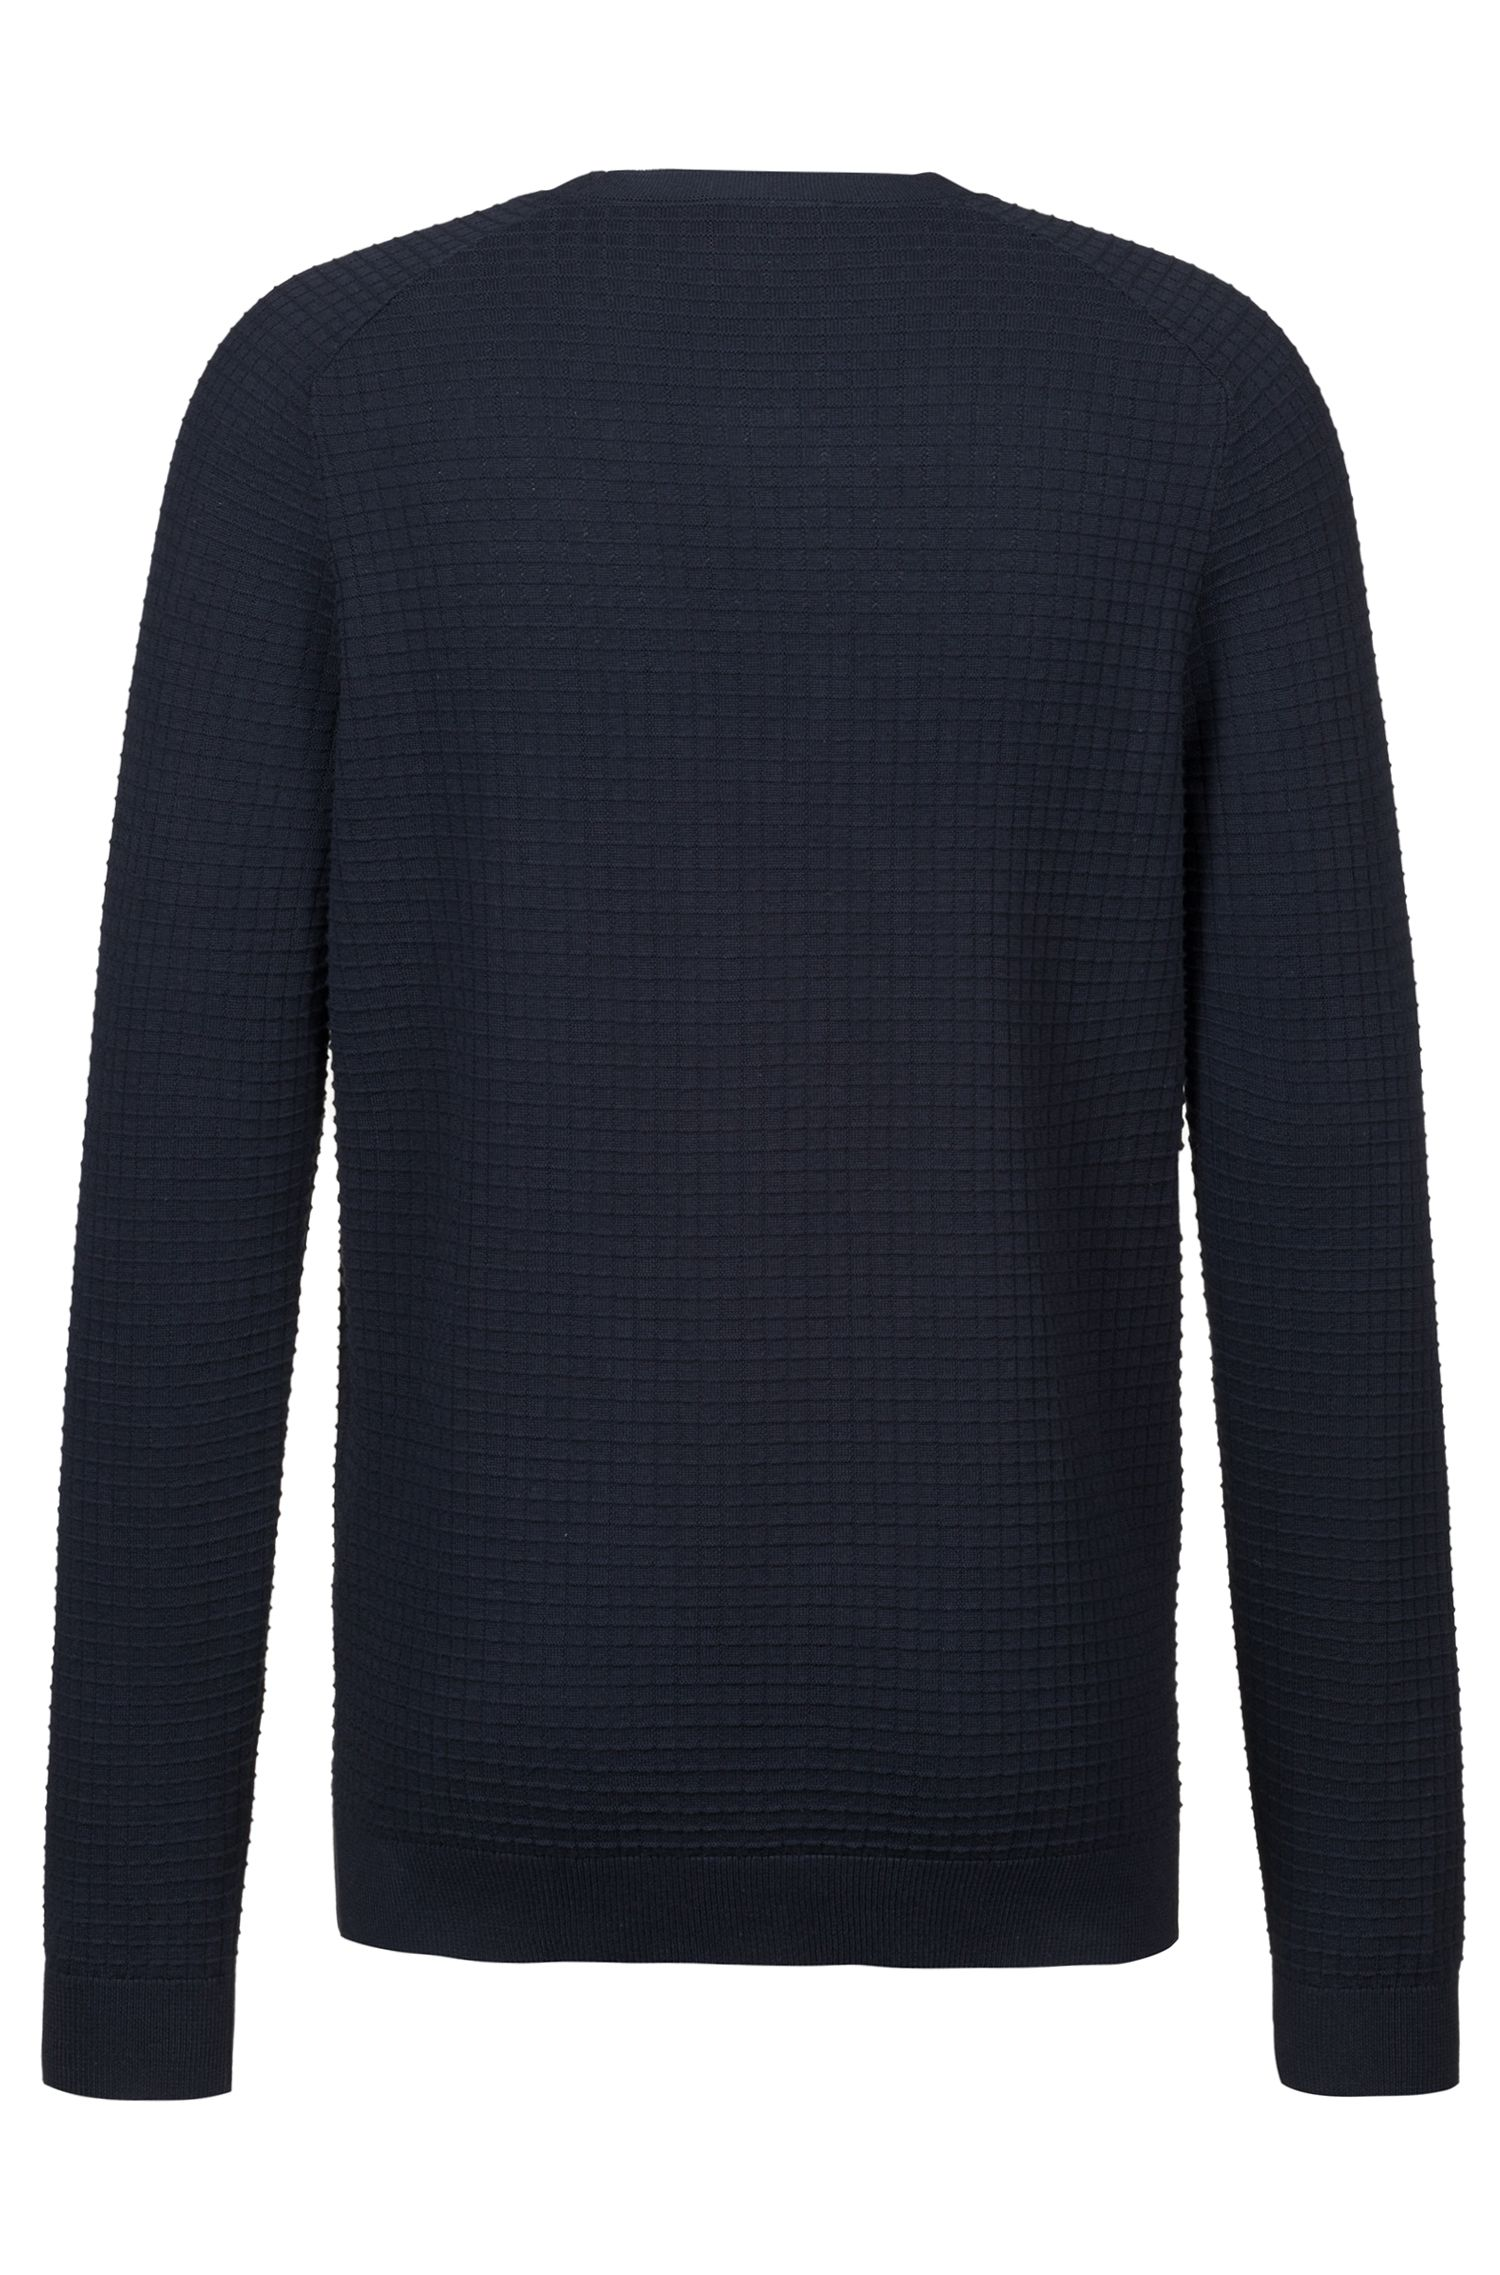 Crew-neck sweater in knitted cotton with grid structure, Dark Blue